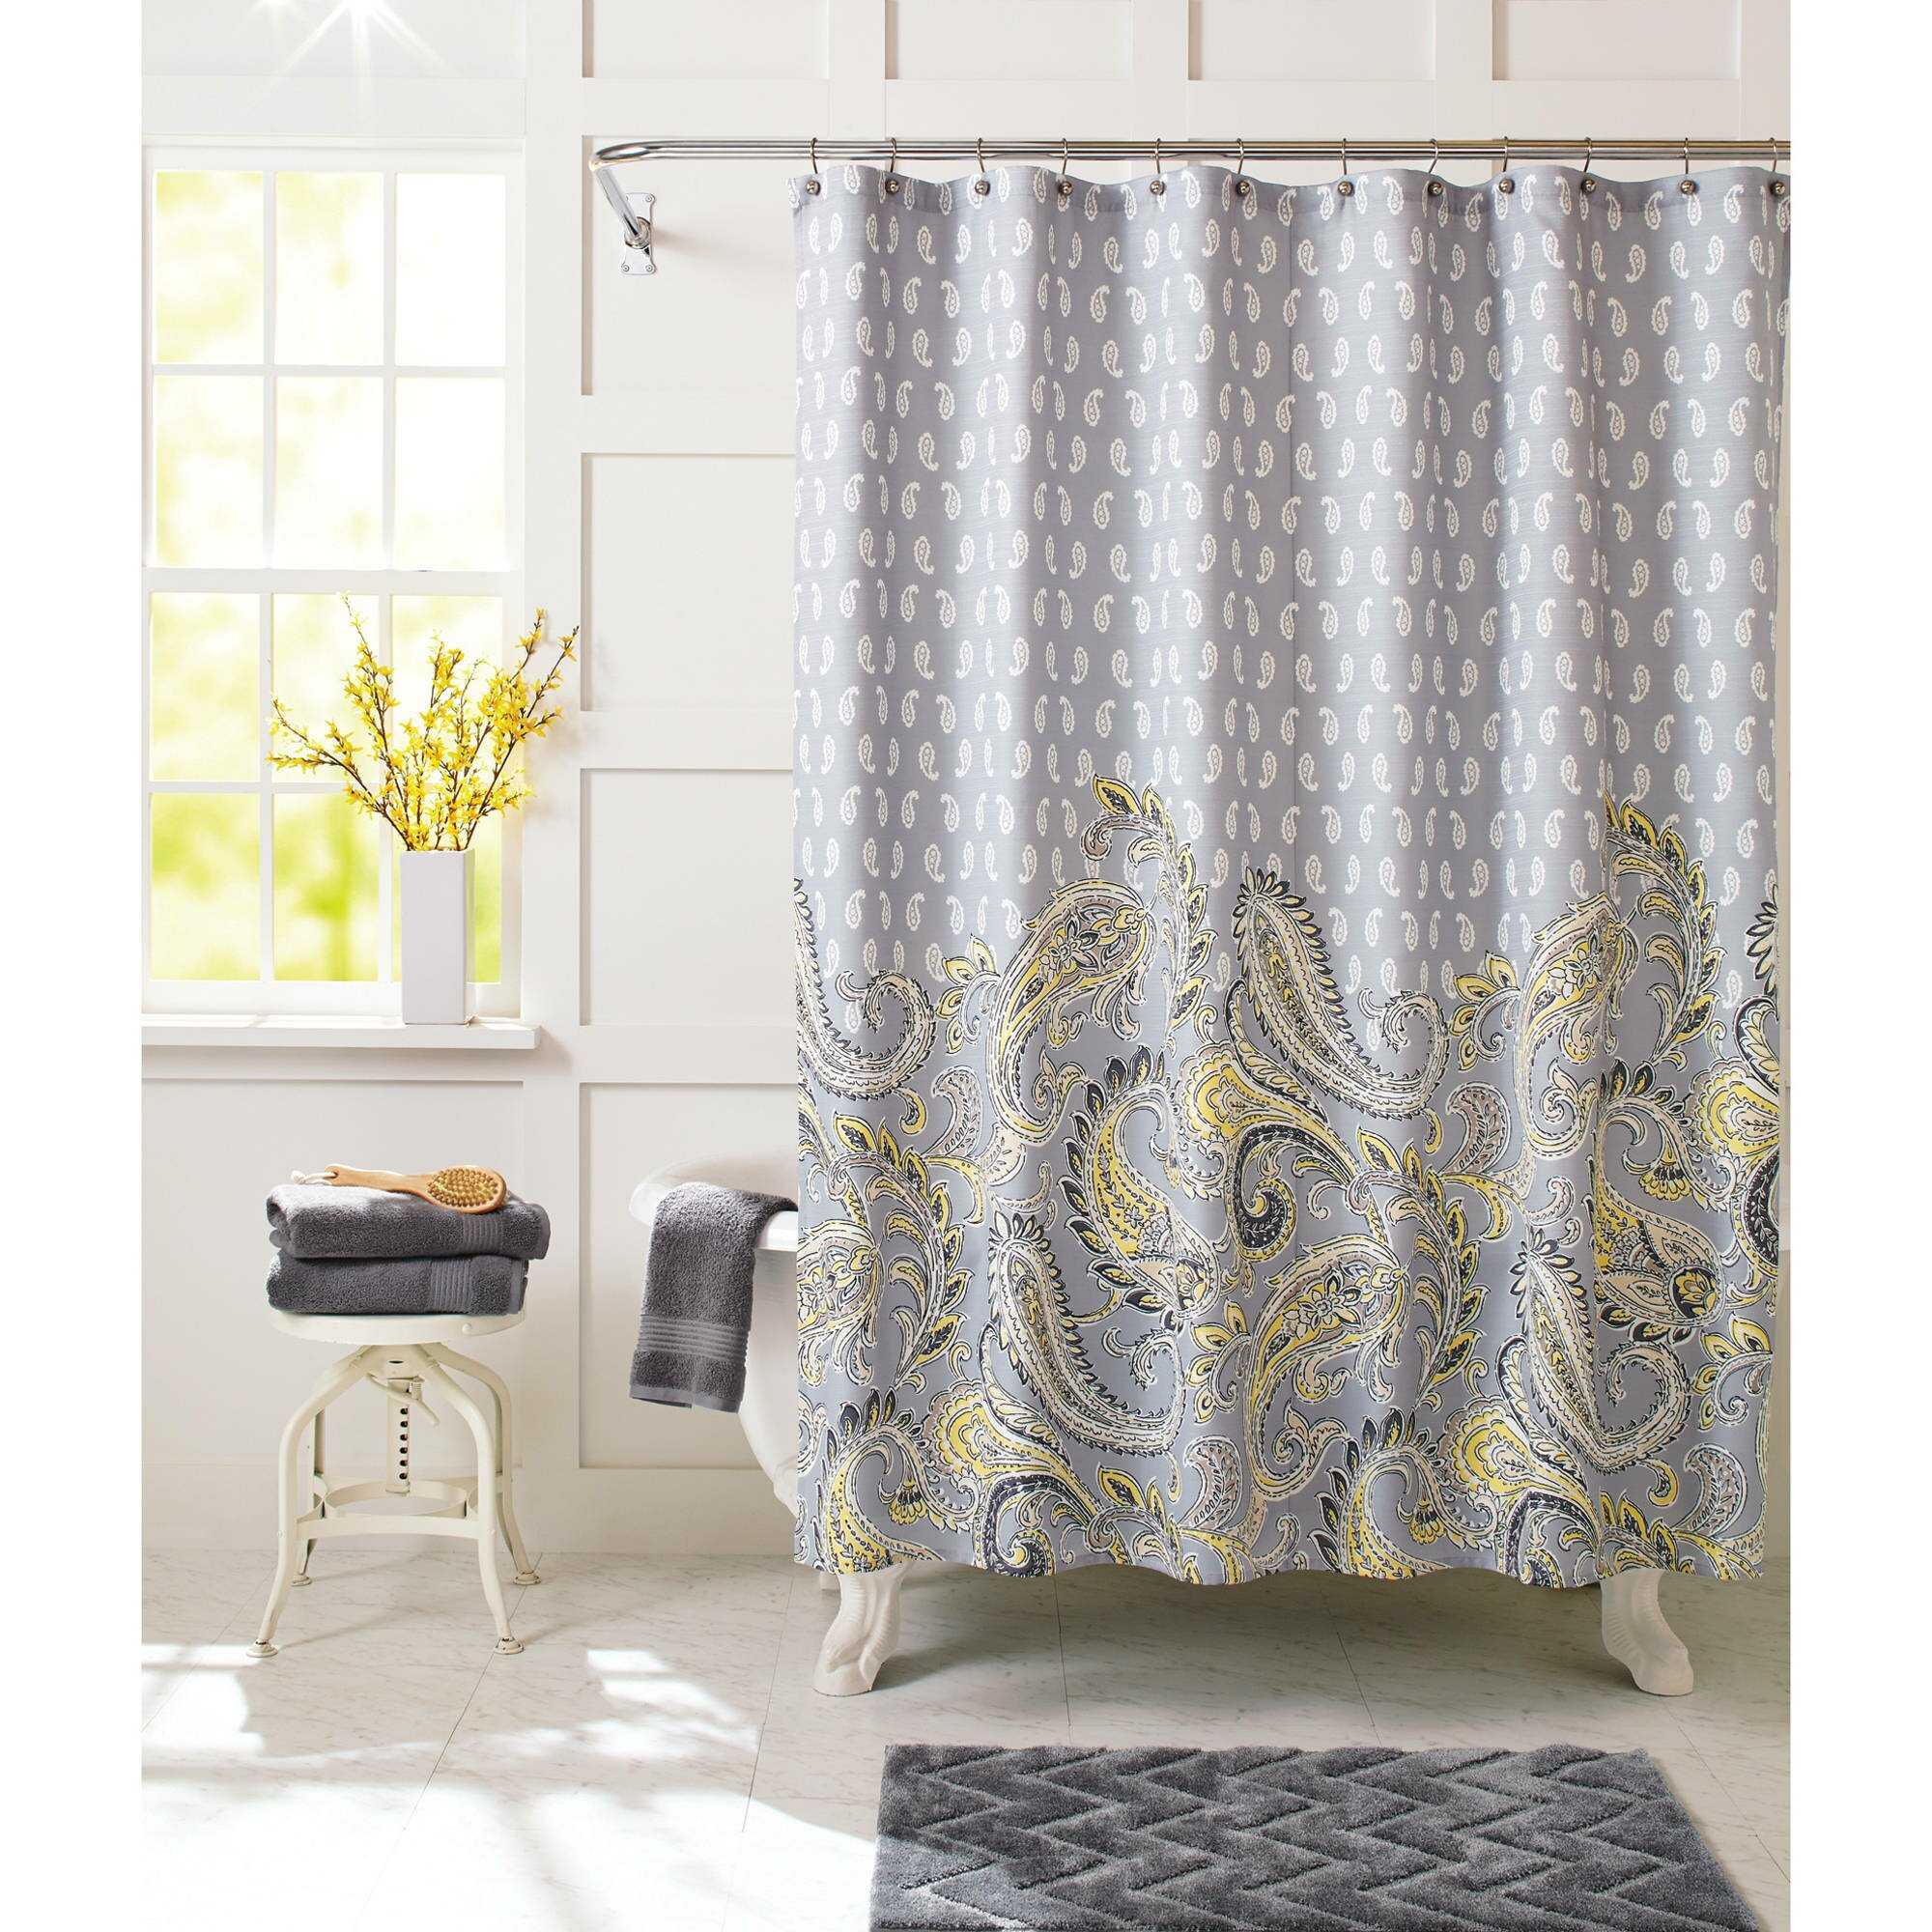 Standard Length Of Curtains Standard Shower Curtain Length Nordstrom Shower Curtains Length Of